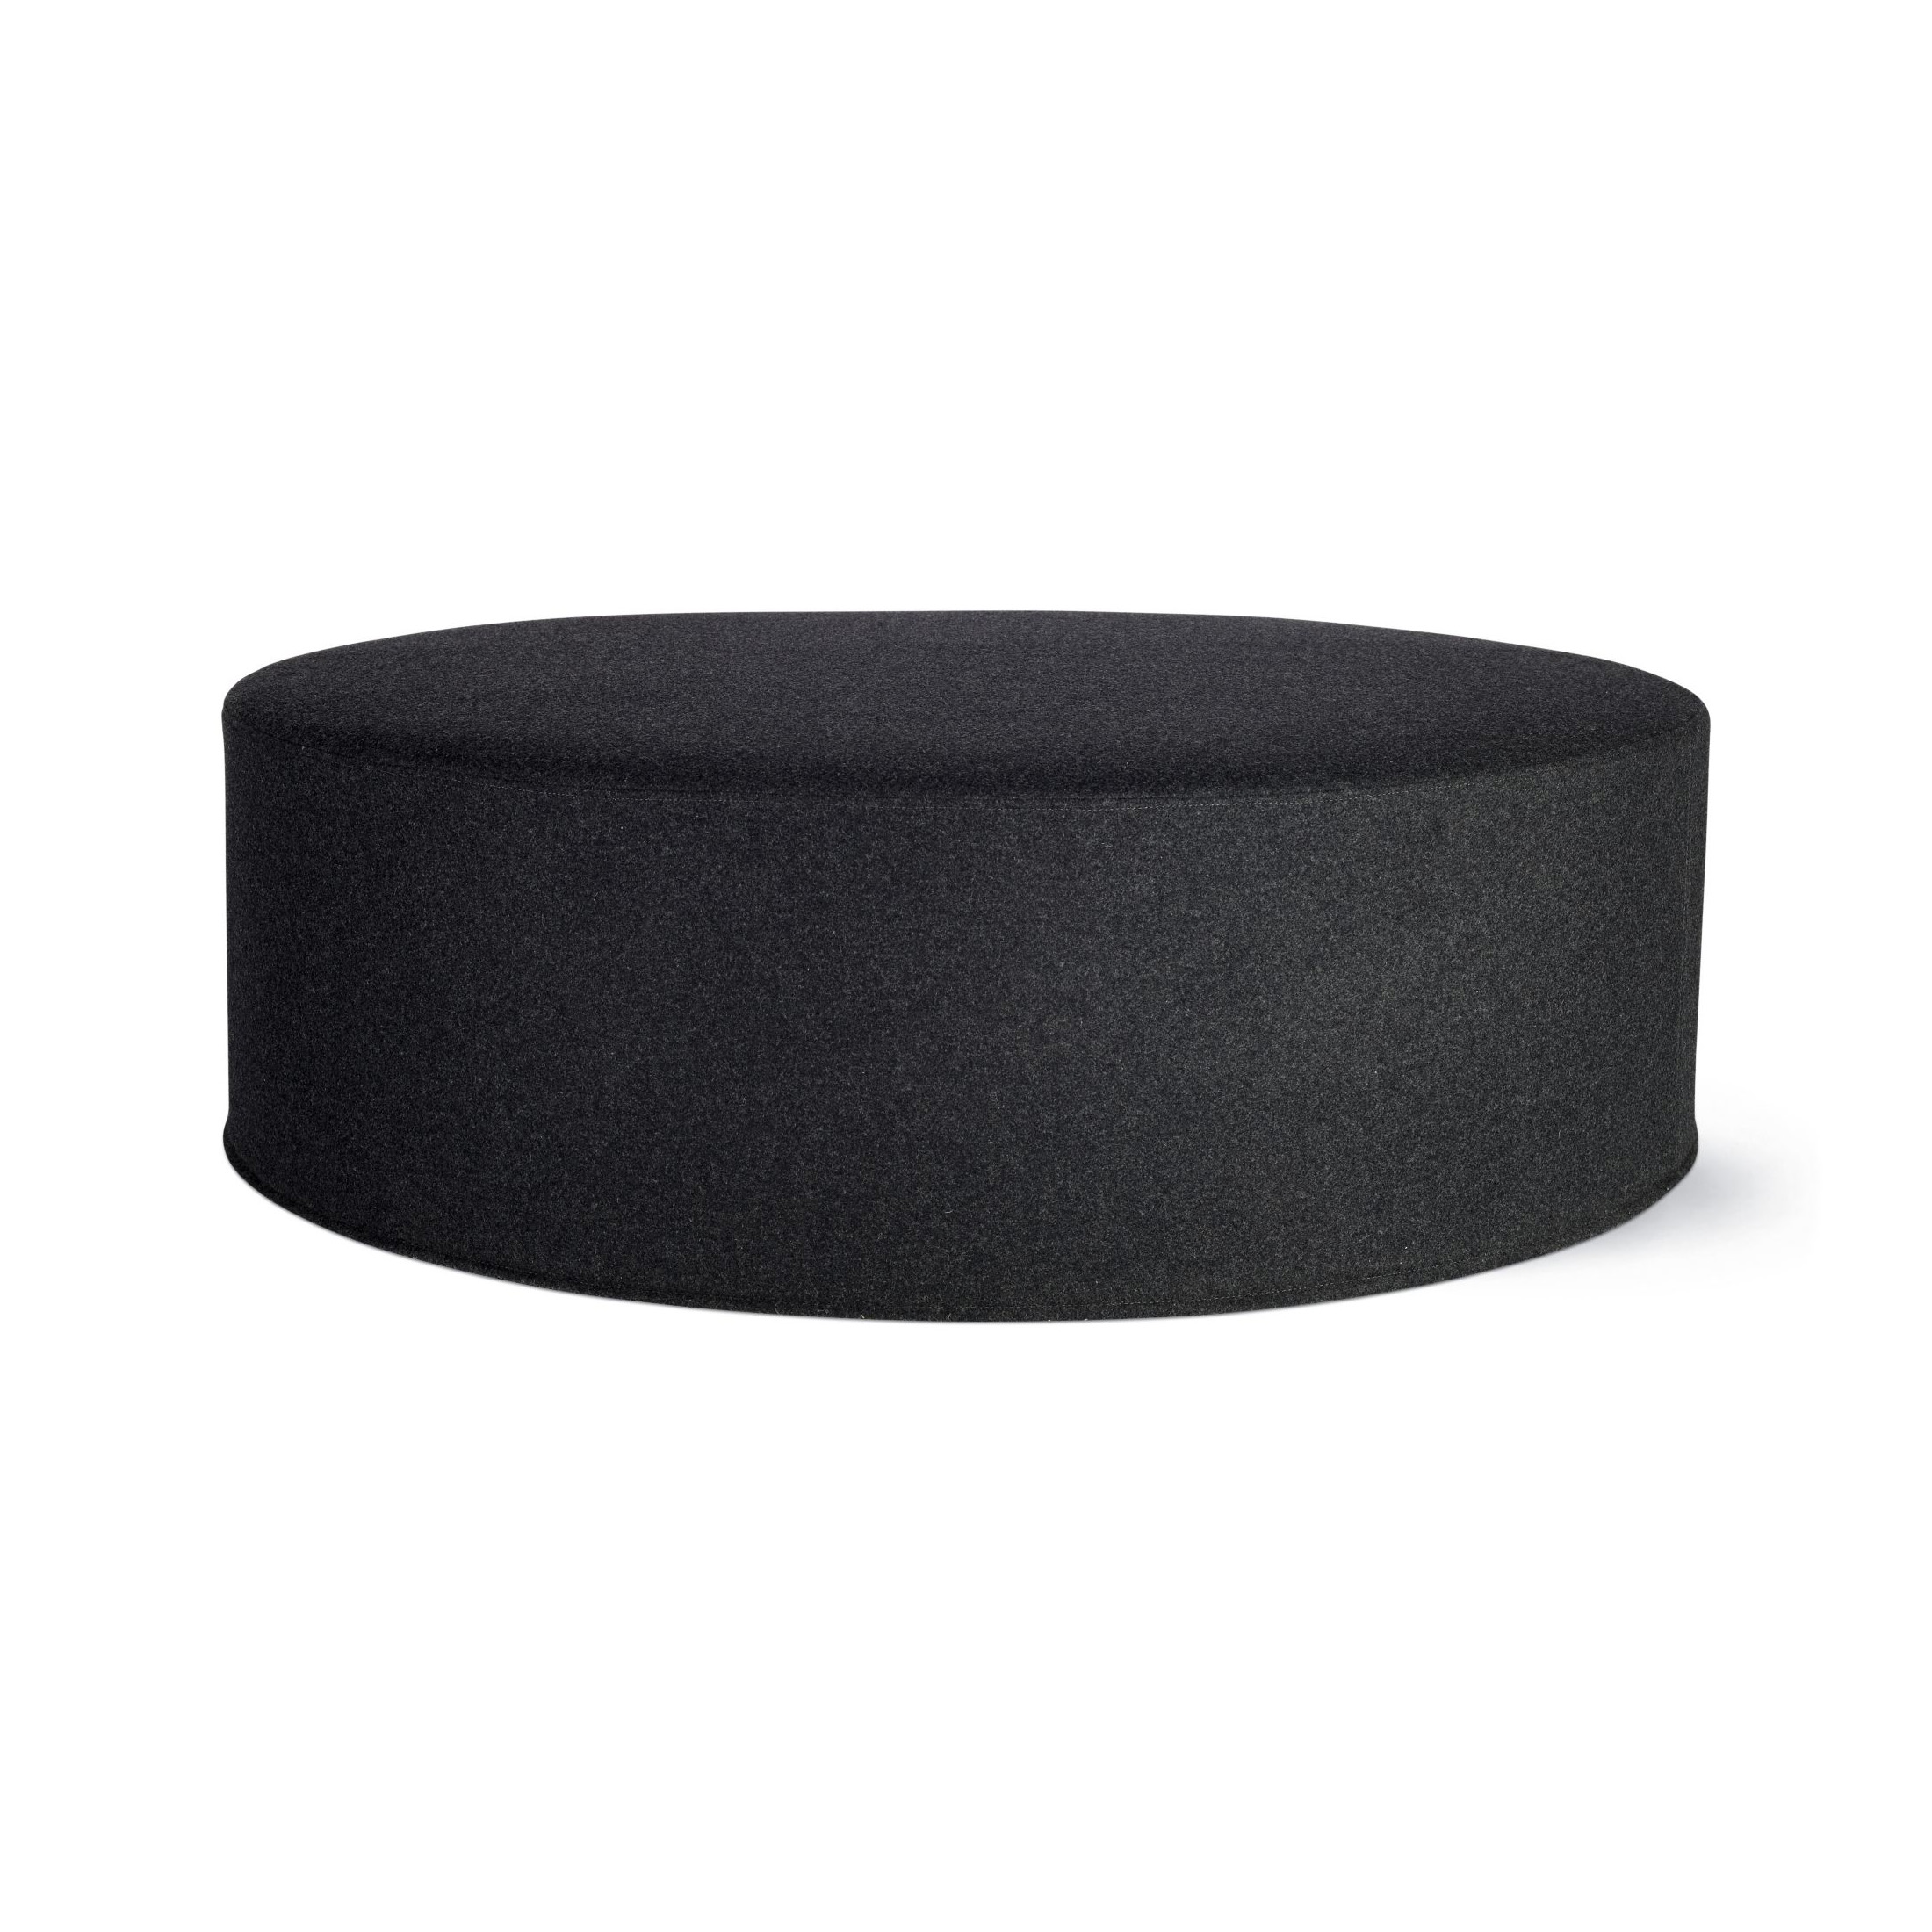 Softline design team drum pouf cocktail shoppulp - Design pouf ...